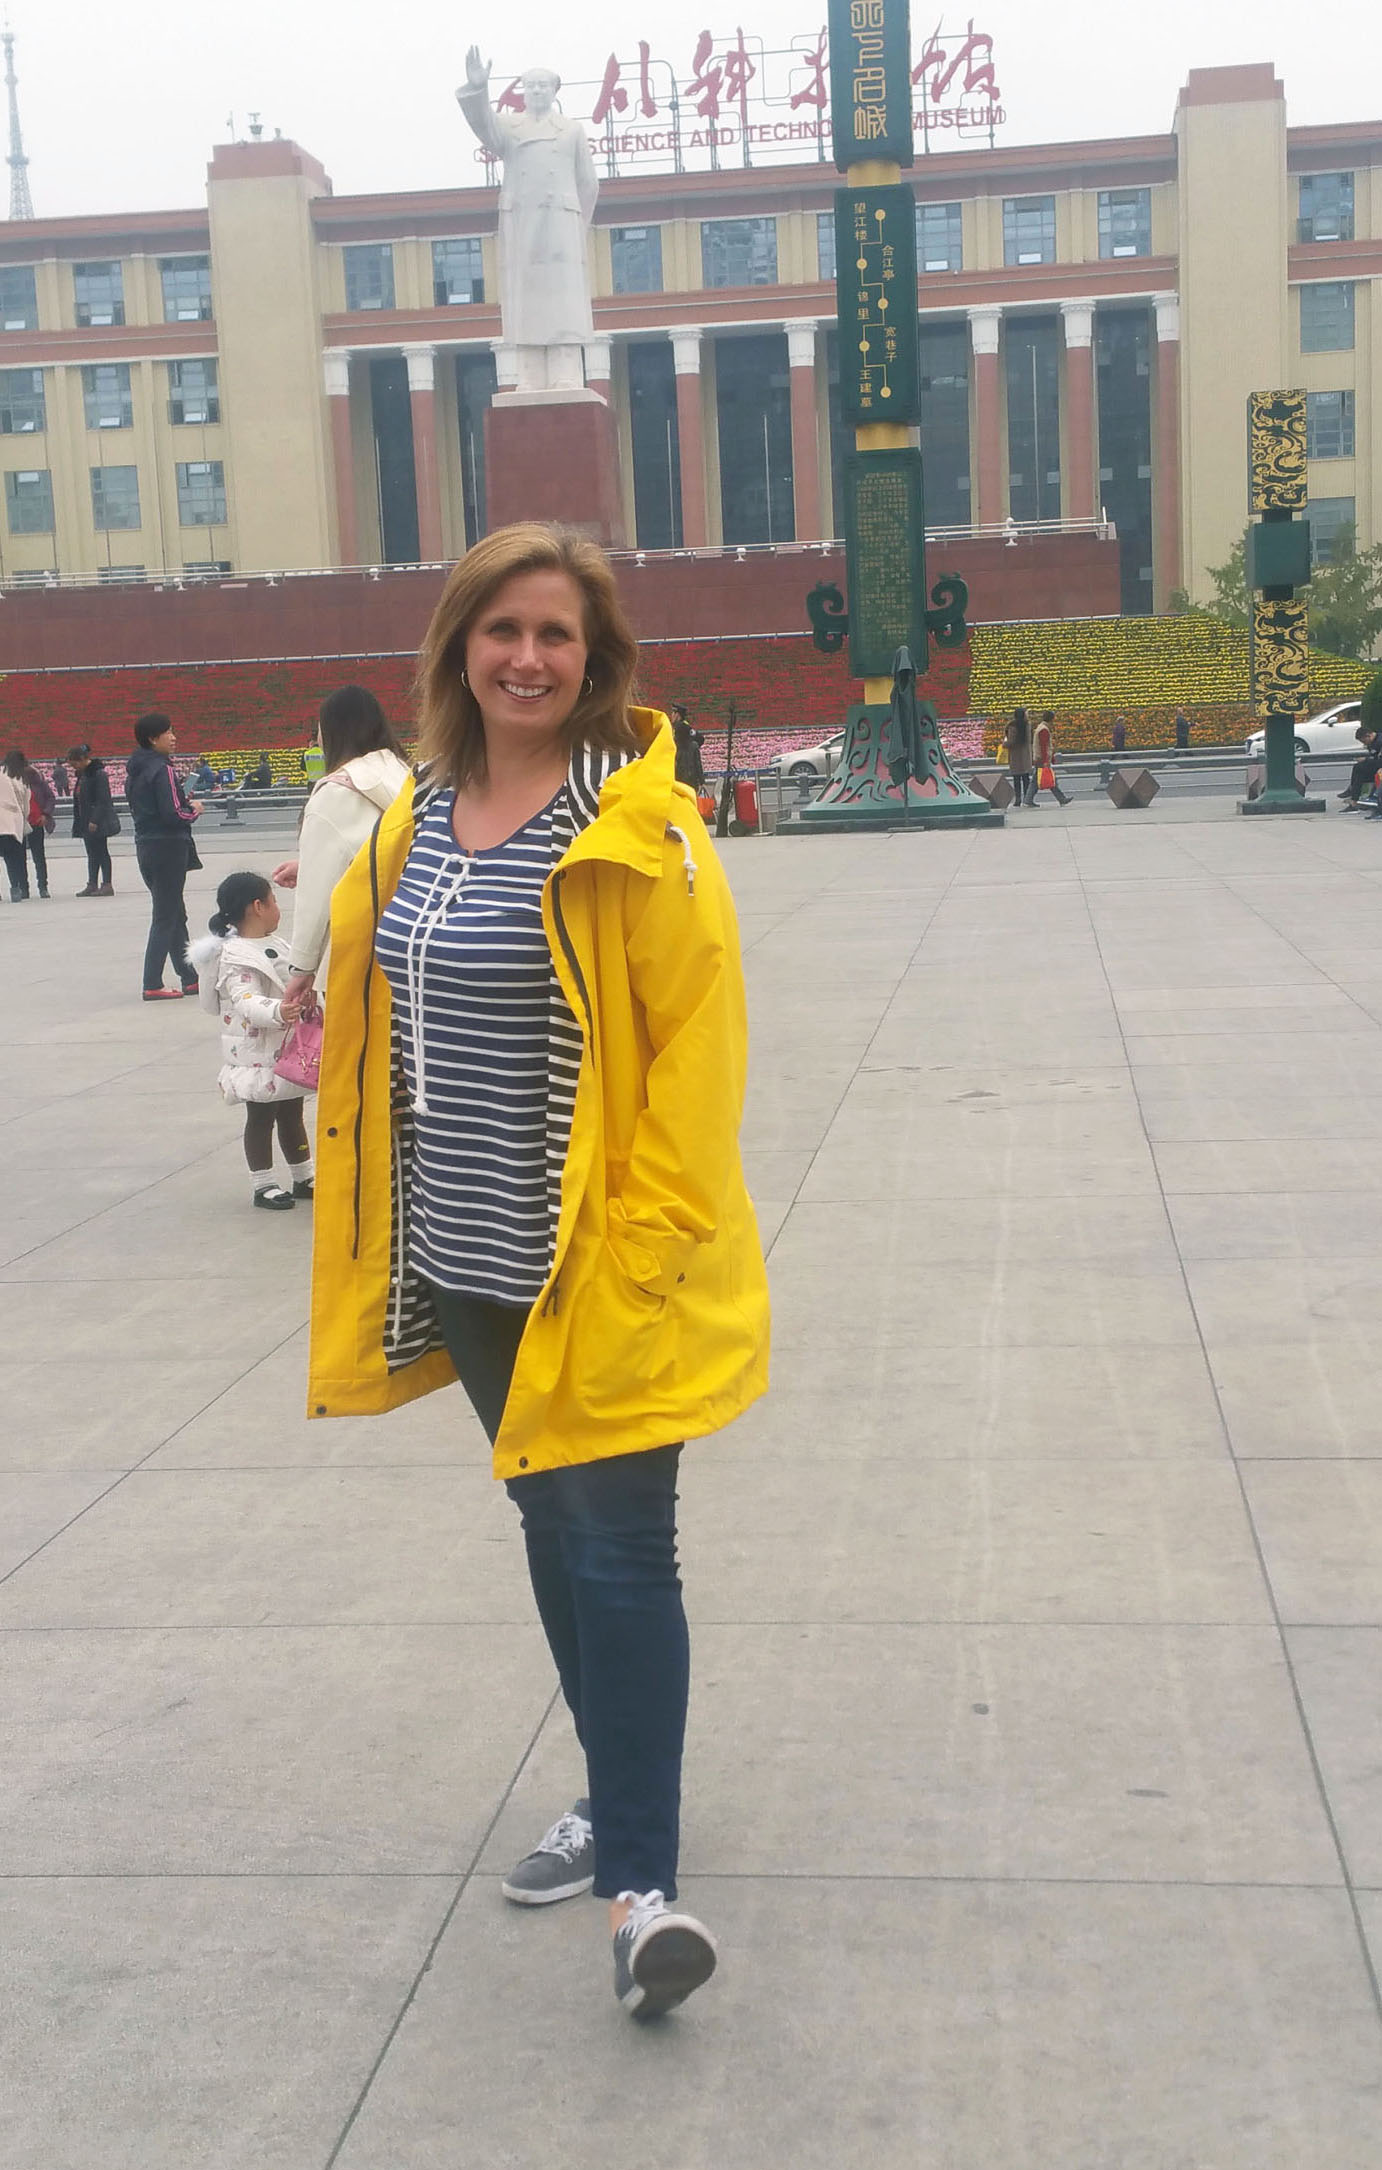 women-i-work-with-michelle-trombetta-china-yellow-raincoat-navy-stripe-top